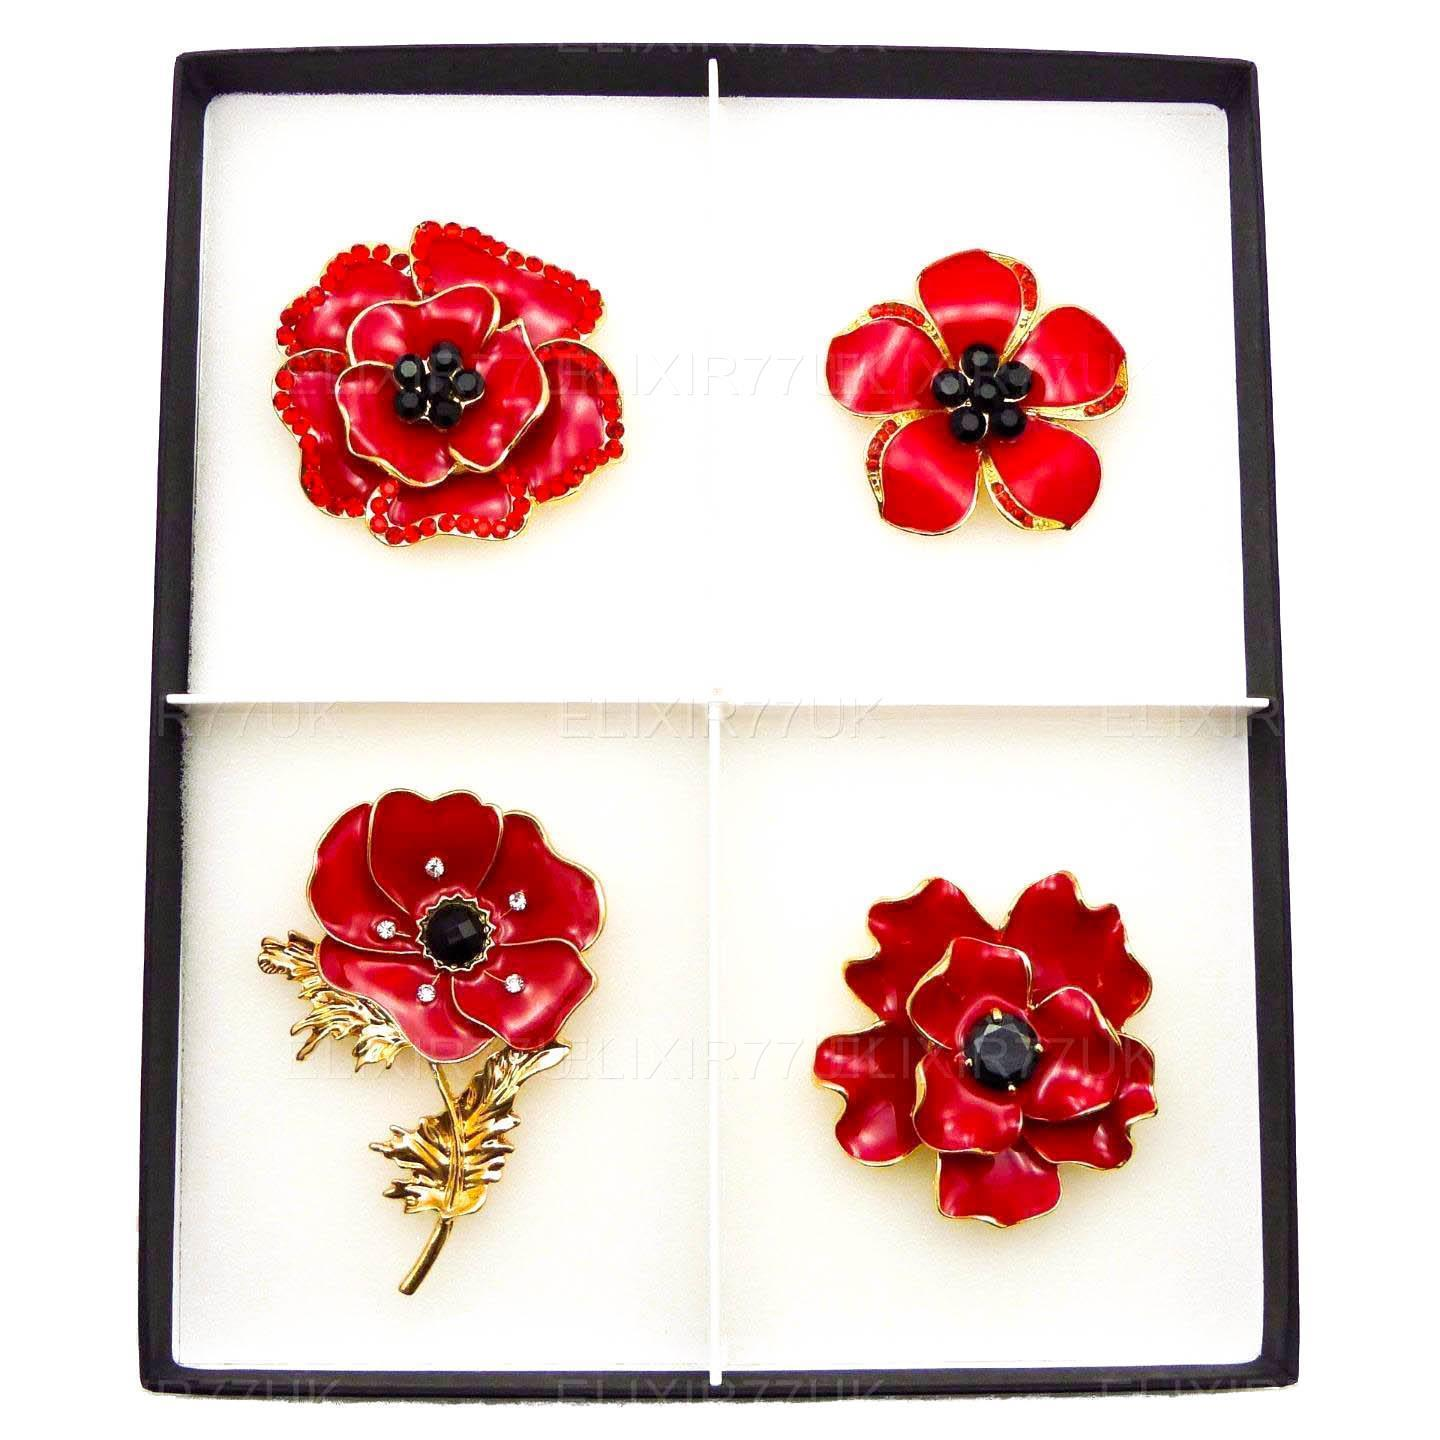 Women red poppy flower brooches enamel pins badge broach crystal new women red poppy flower brooches enamel pins badge mightylinksfo